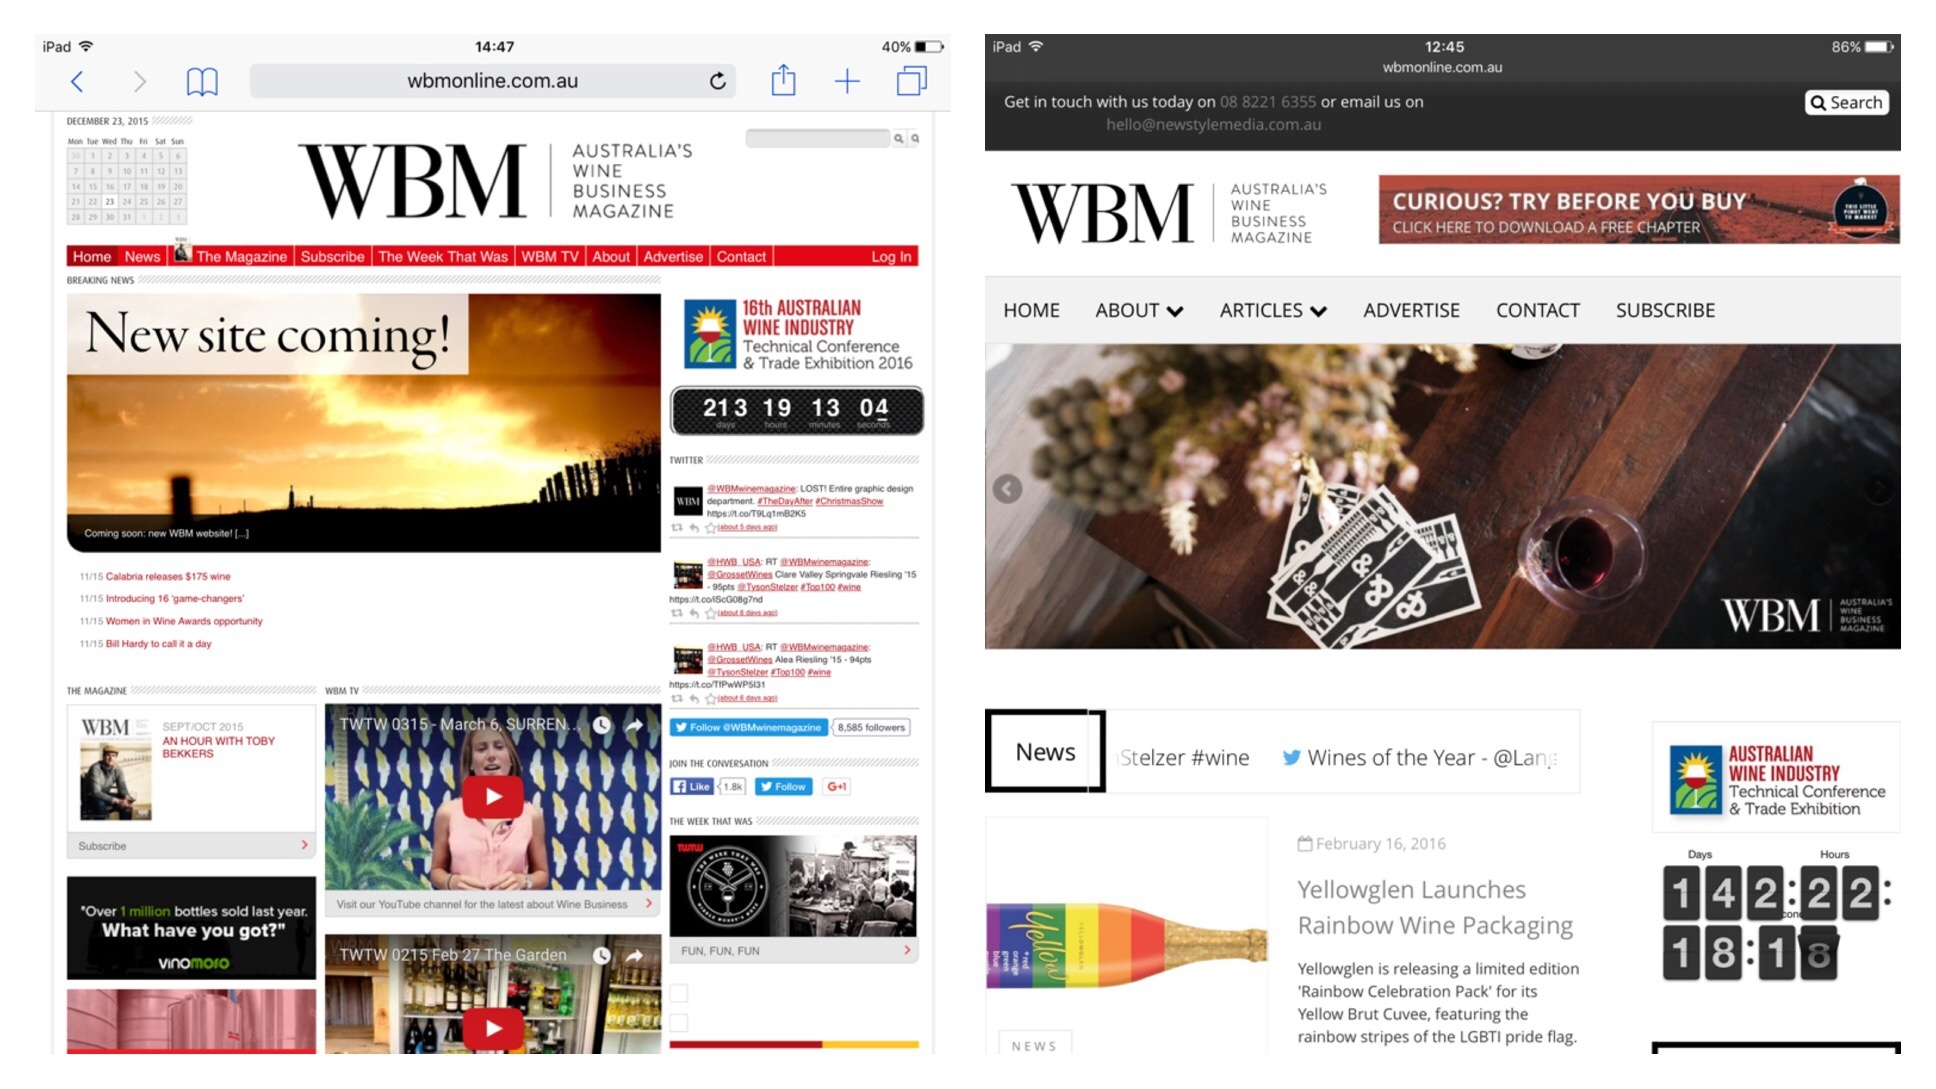 The old Wine Business Magazine site against the new